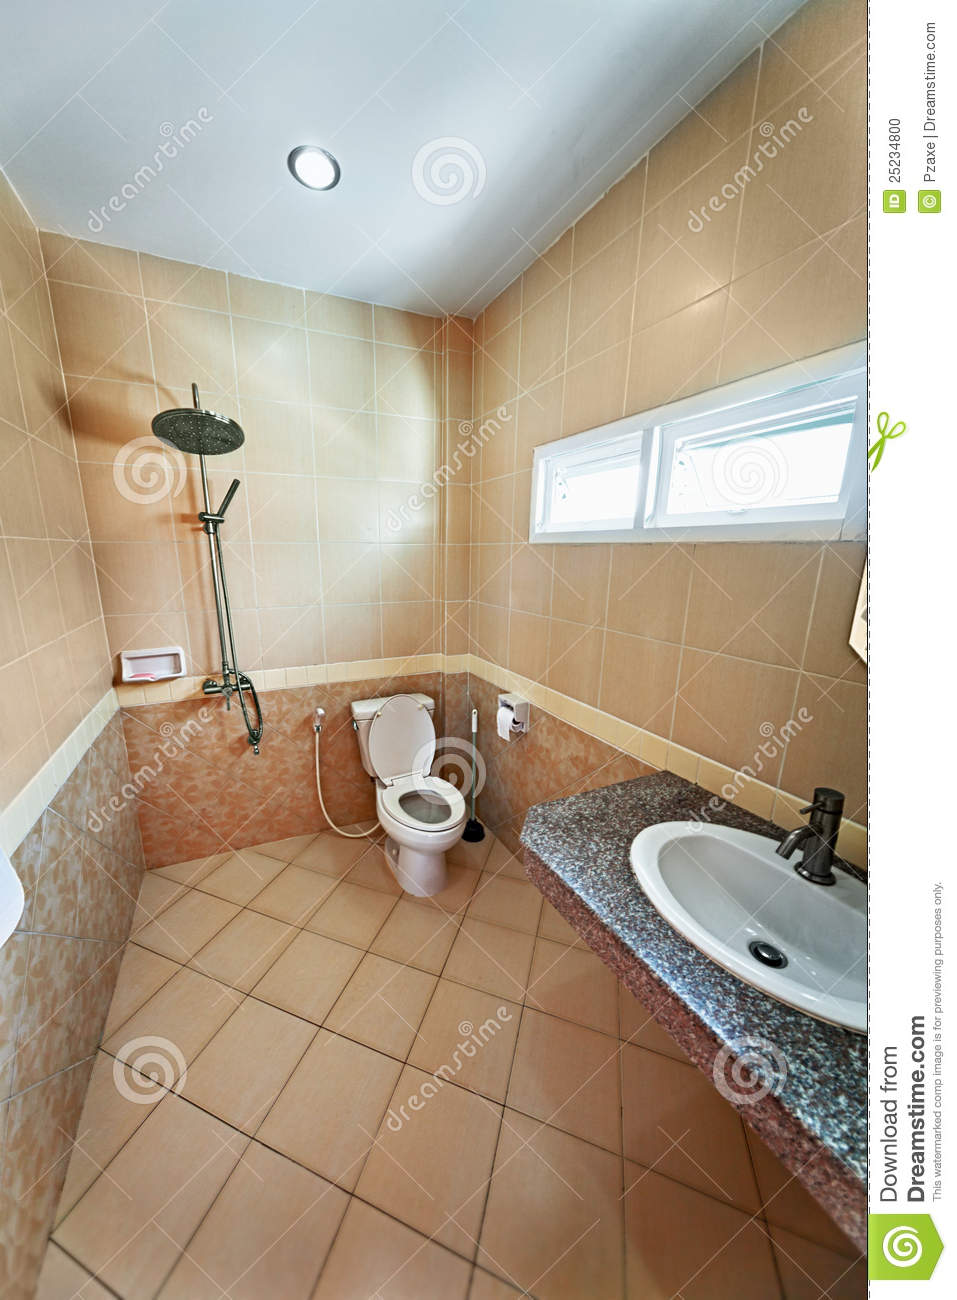 Iinterior of beige bathroom with shower stock photo for Petite salle de bain agencement